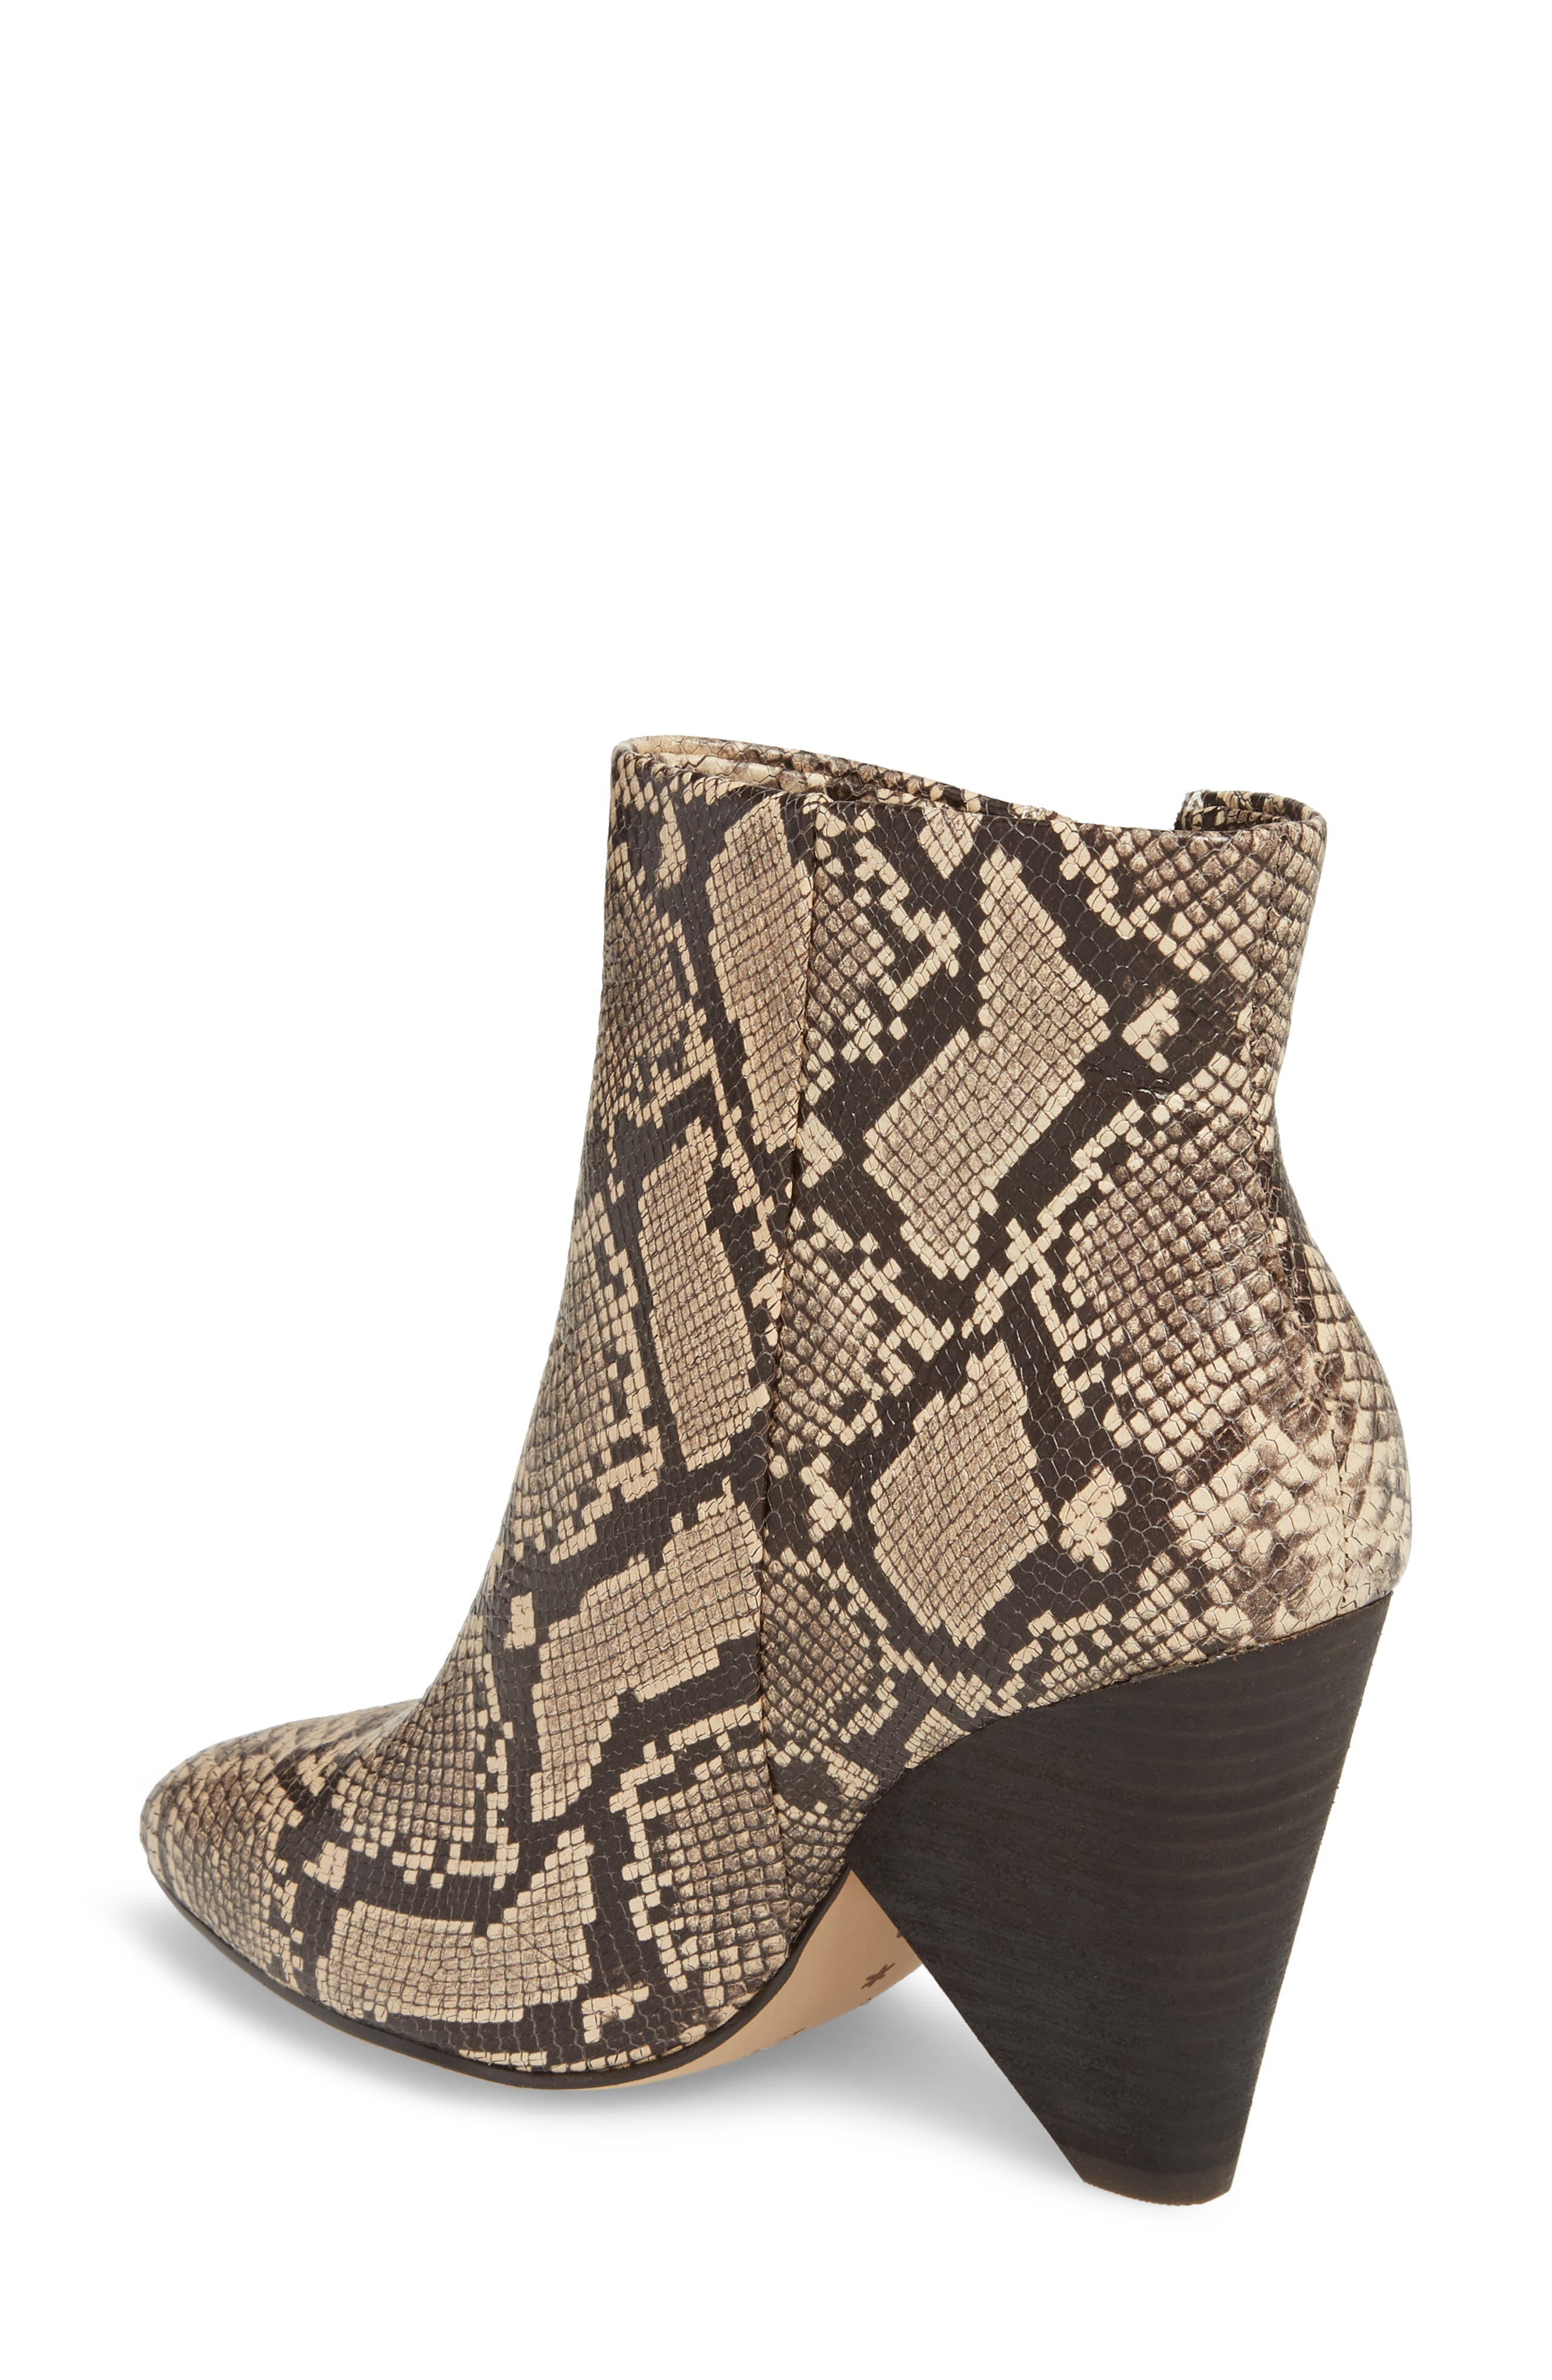 Neva II Bootie,                             Alternate thumbnail 2, color,                             NATURAL EMBOSSED SNAKE LEATHER